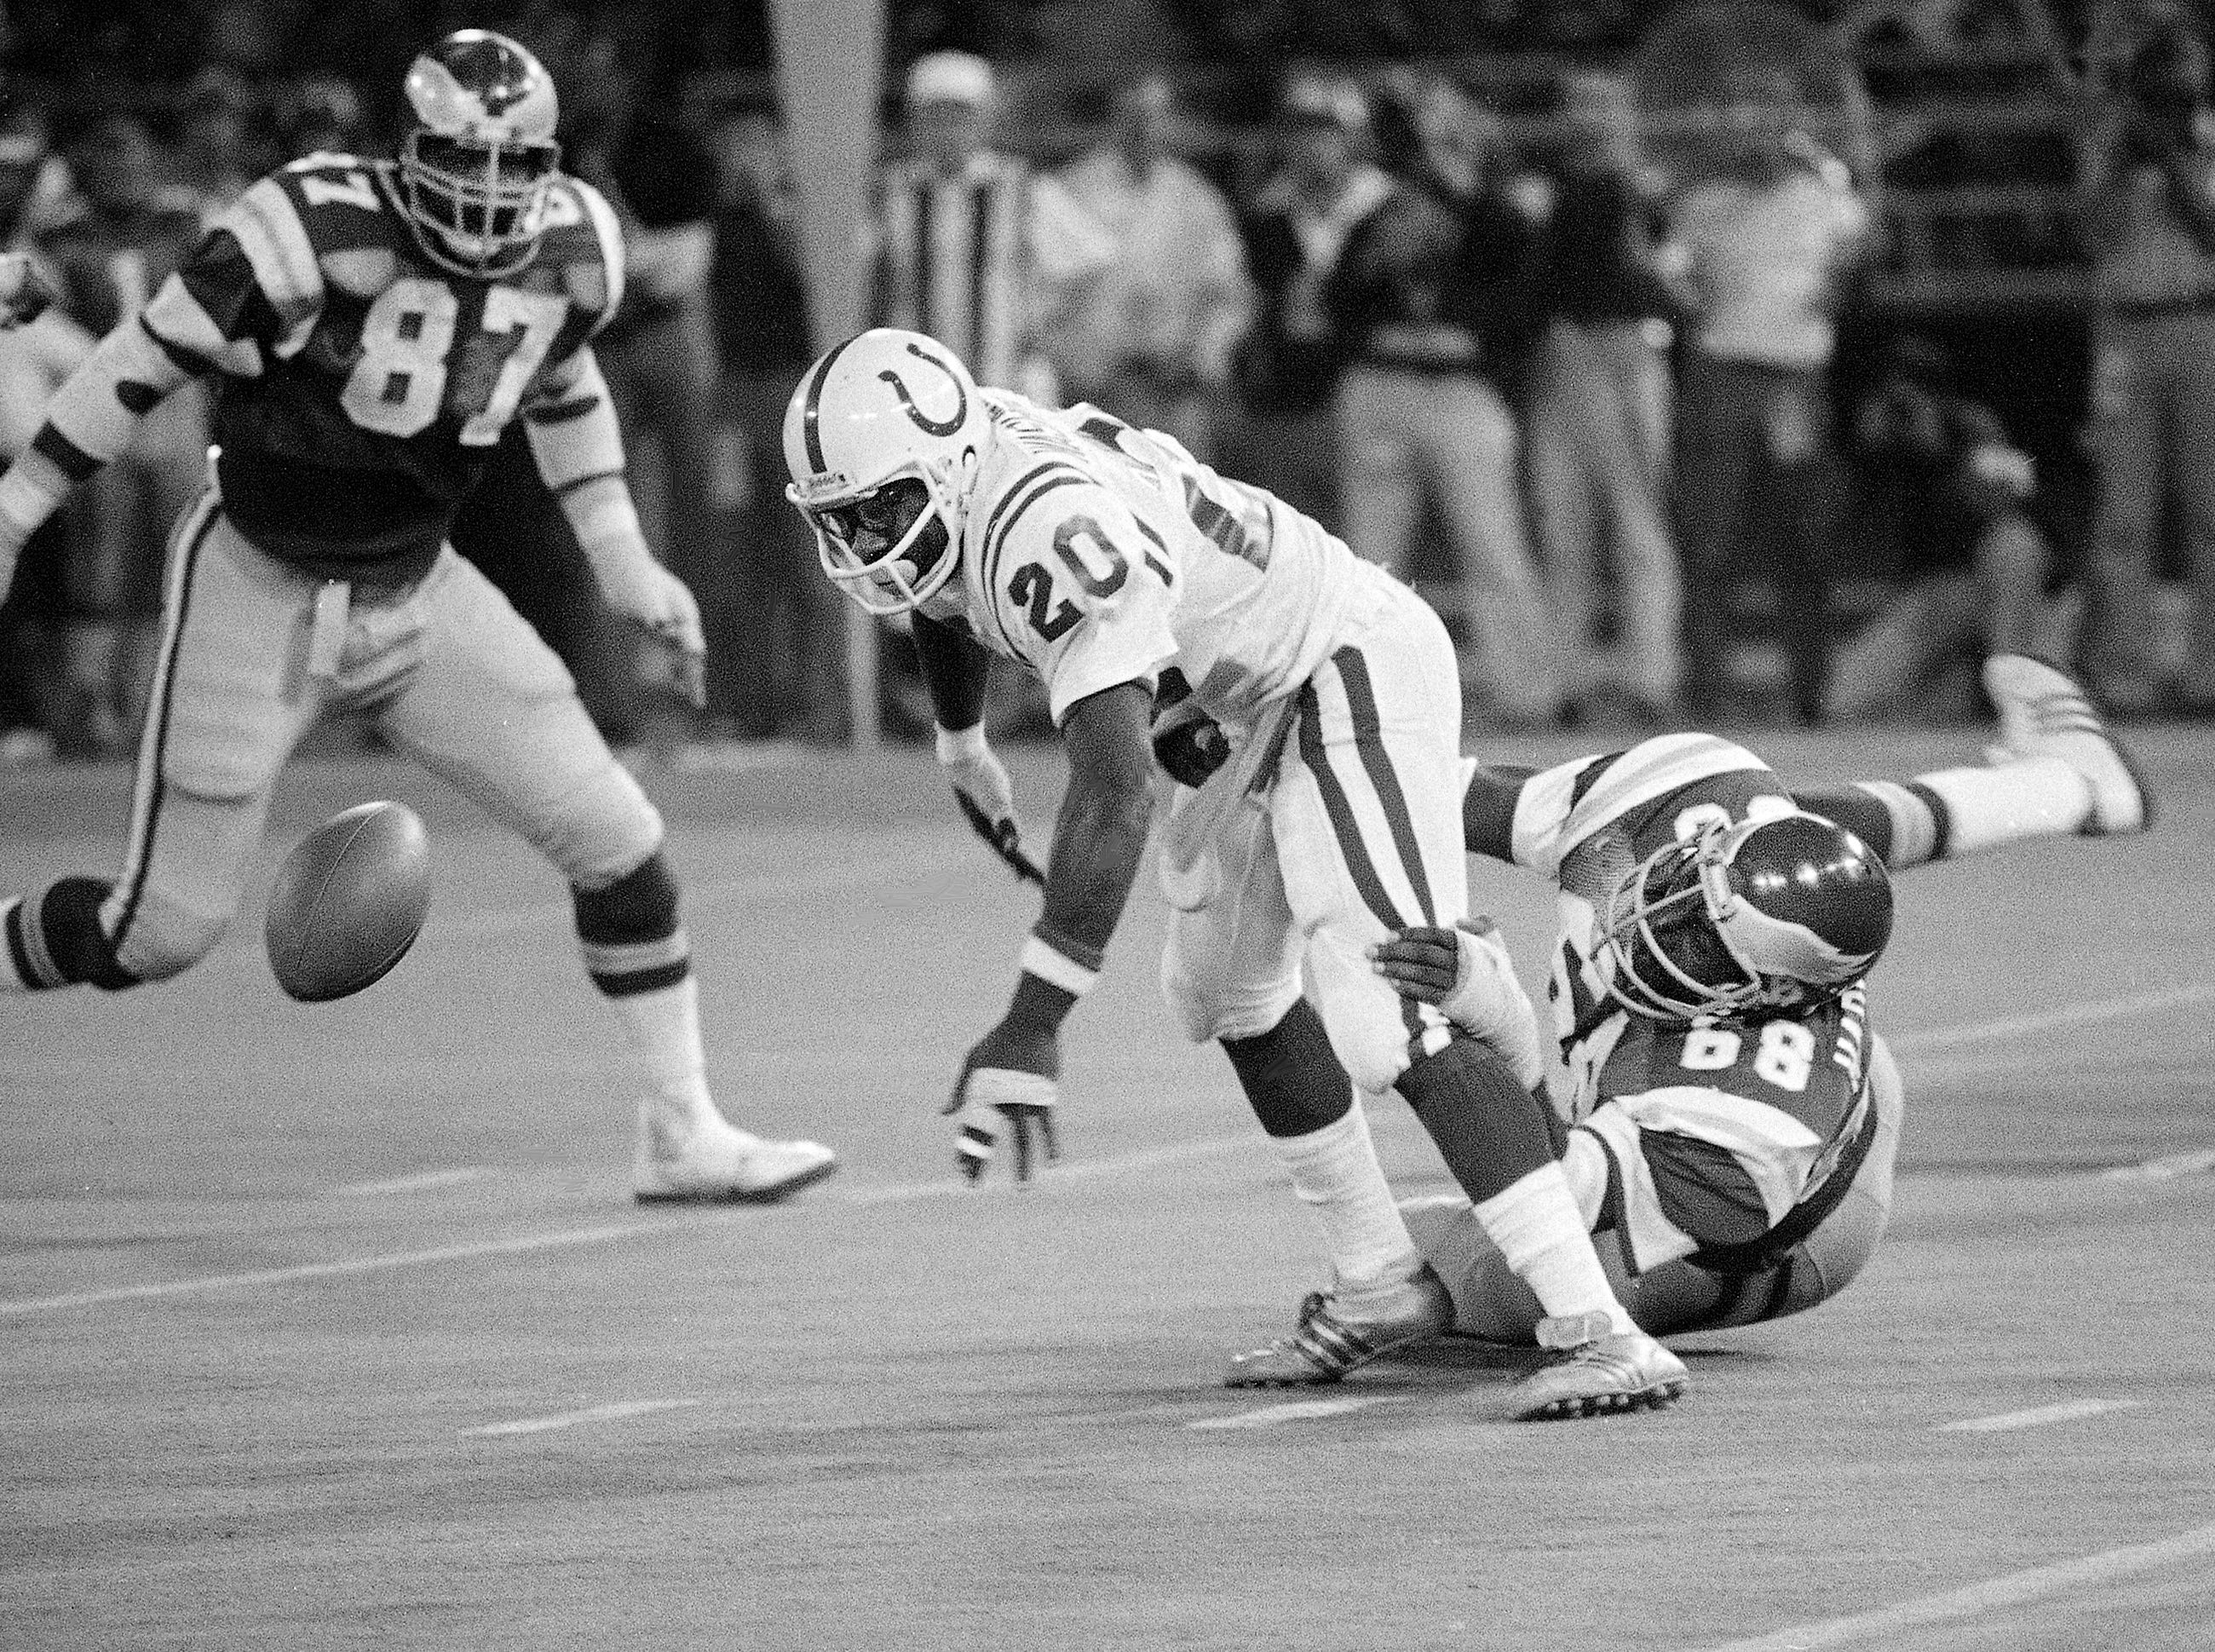 Baltimore Colts' halfback Joe Washington (20) fumbles the ball as he is grabbed from behind by Philadelphia Eagles' Dennis Harrison (68) in the first half of the preseason game in Philadelphia August 17, 1979. Watching is Eagles' Claude Humphrey (78) as the ball was recovered by the Colts.